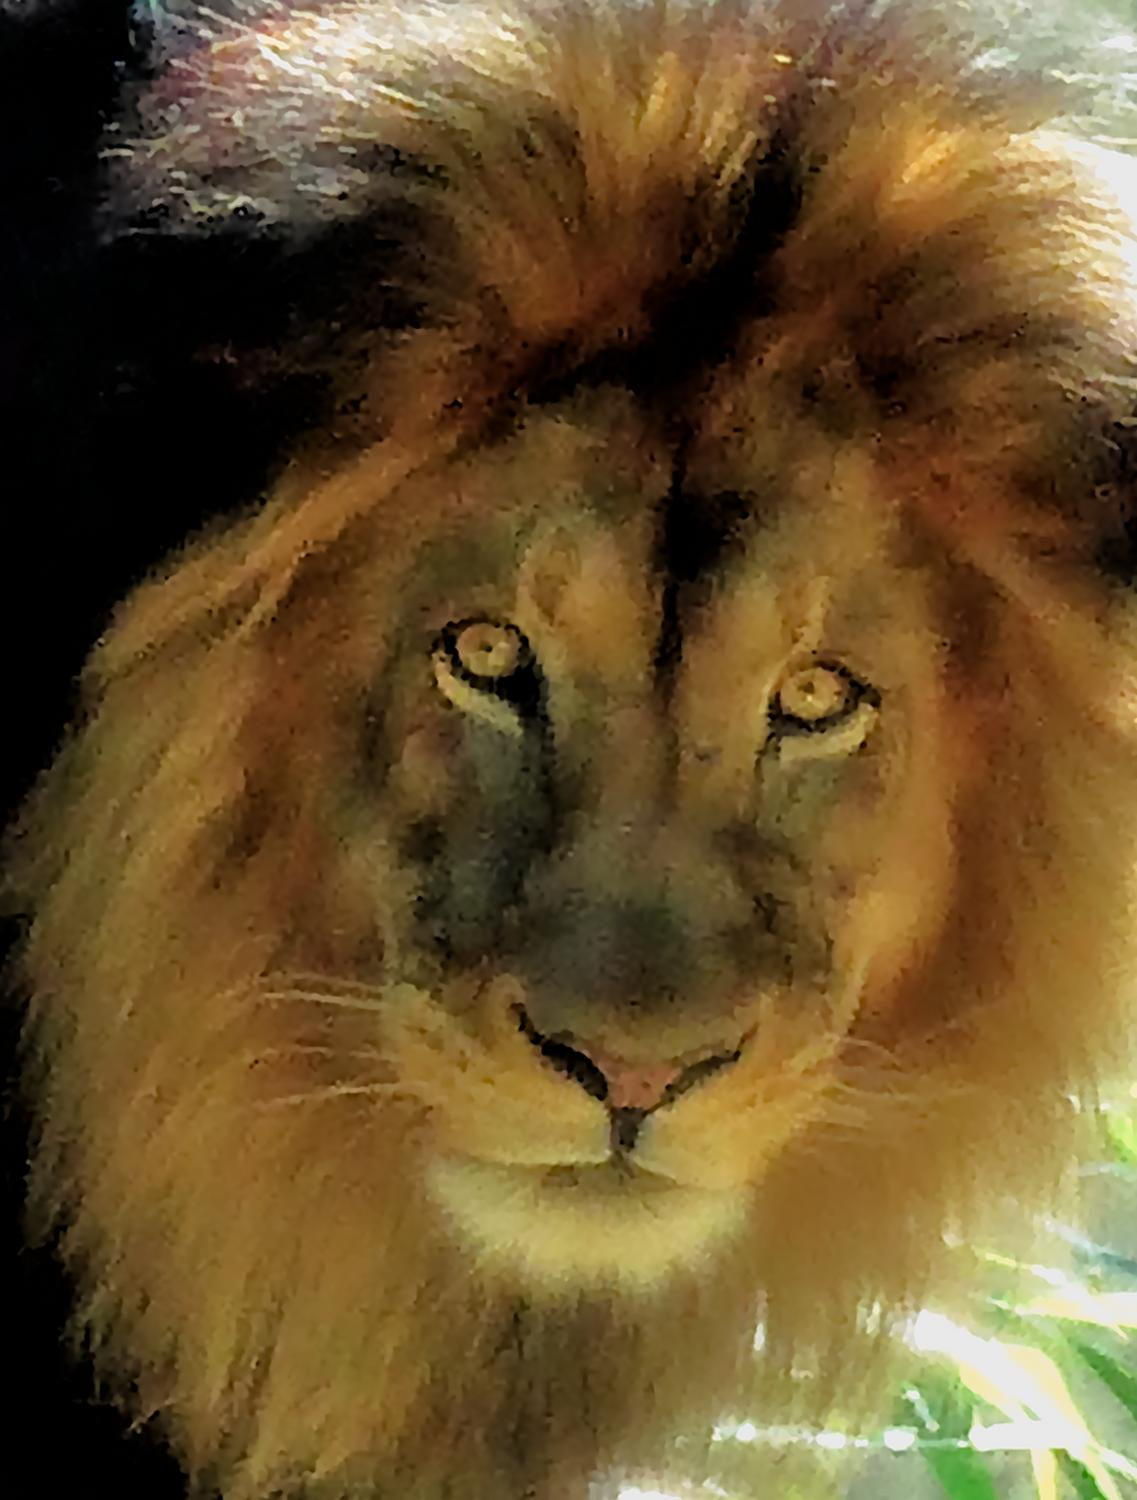 - In this portrait, Mr. Lion is looking directly at you and wondering<br>what's for dinner tonight? - - Panasonic DMC-LF1 - Washington DC National zoo - Tony Karp, design, art, photography, techno-impressionist, techno-impressionism, aerial photography , drone , drones , dji , mavic pro , video , 3D printing - Books -